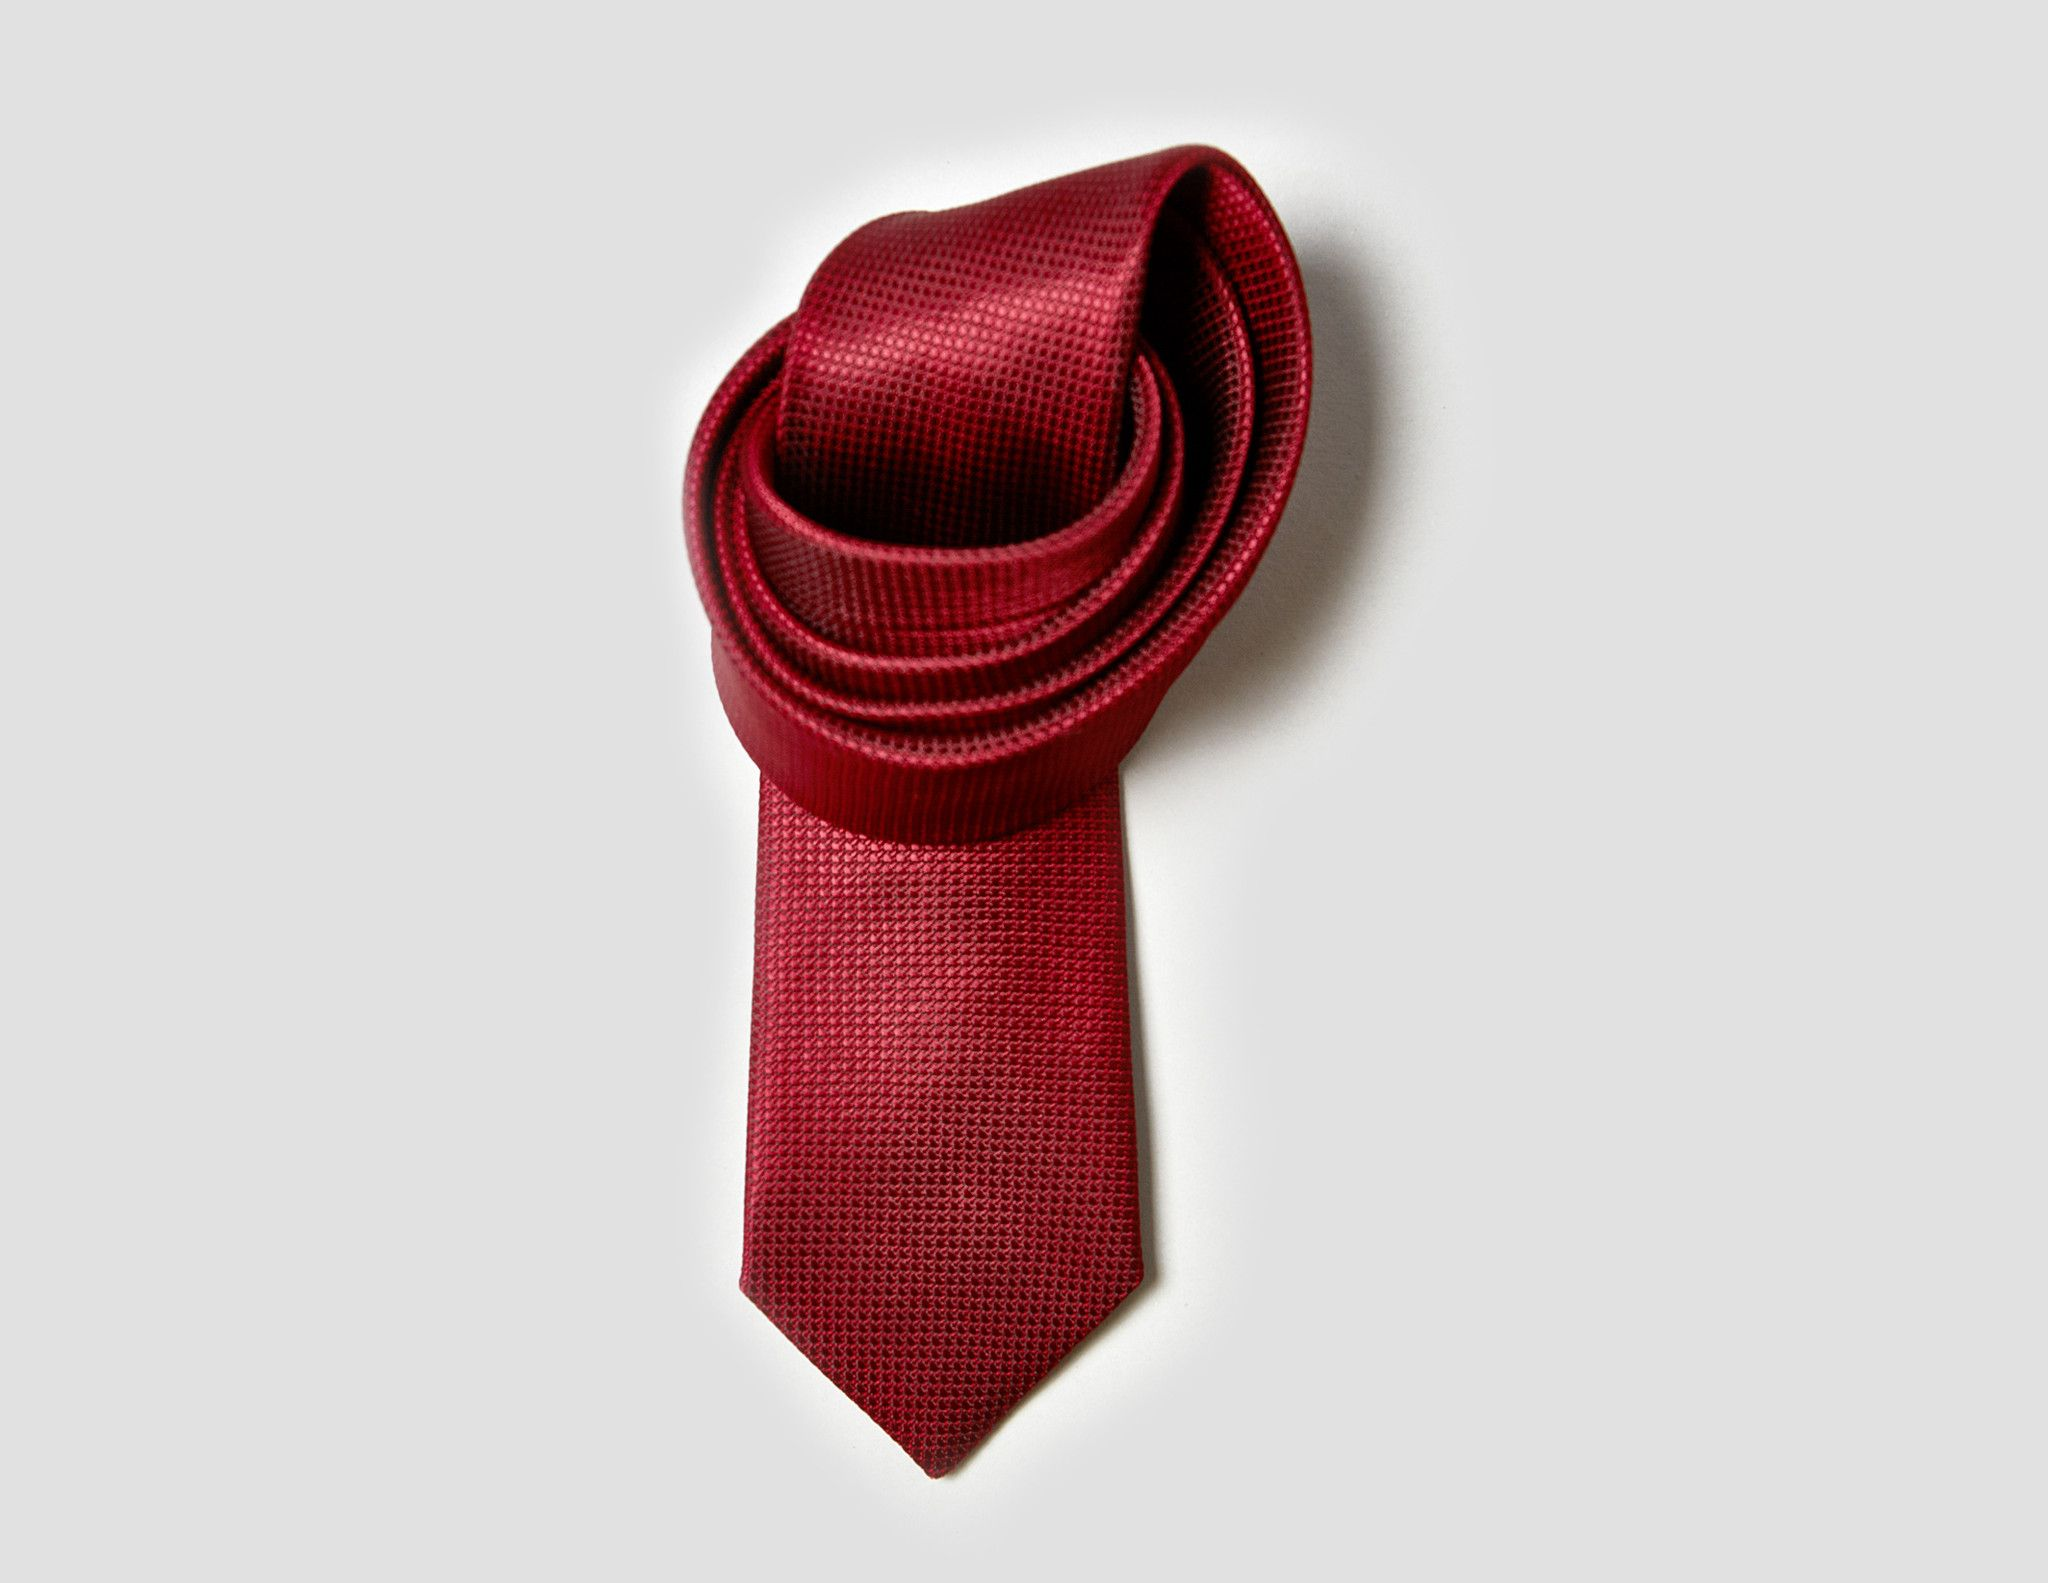 CARDINAL Red slim tie- This exquisitely hand crafted tie matches perfectly with most classic colors.